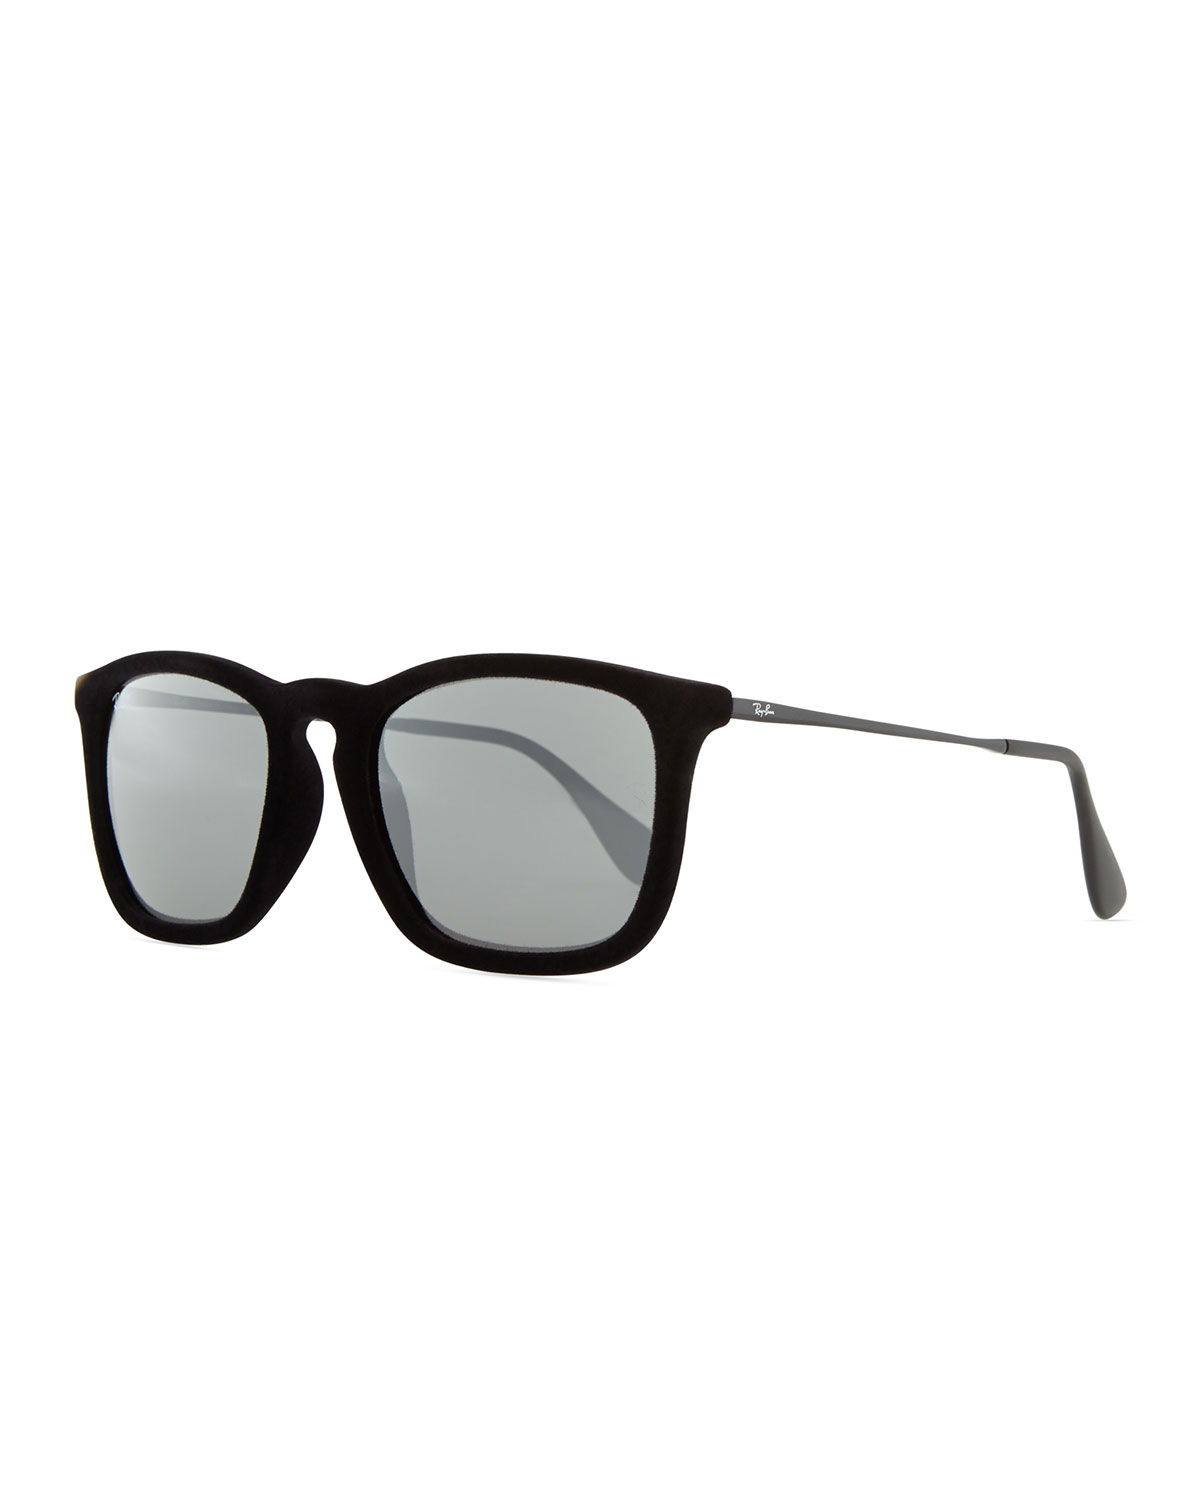 ray ban velvet round keyhole sunglasses  gallery